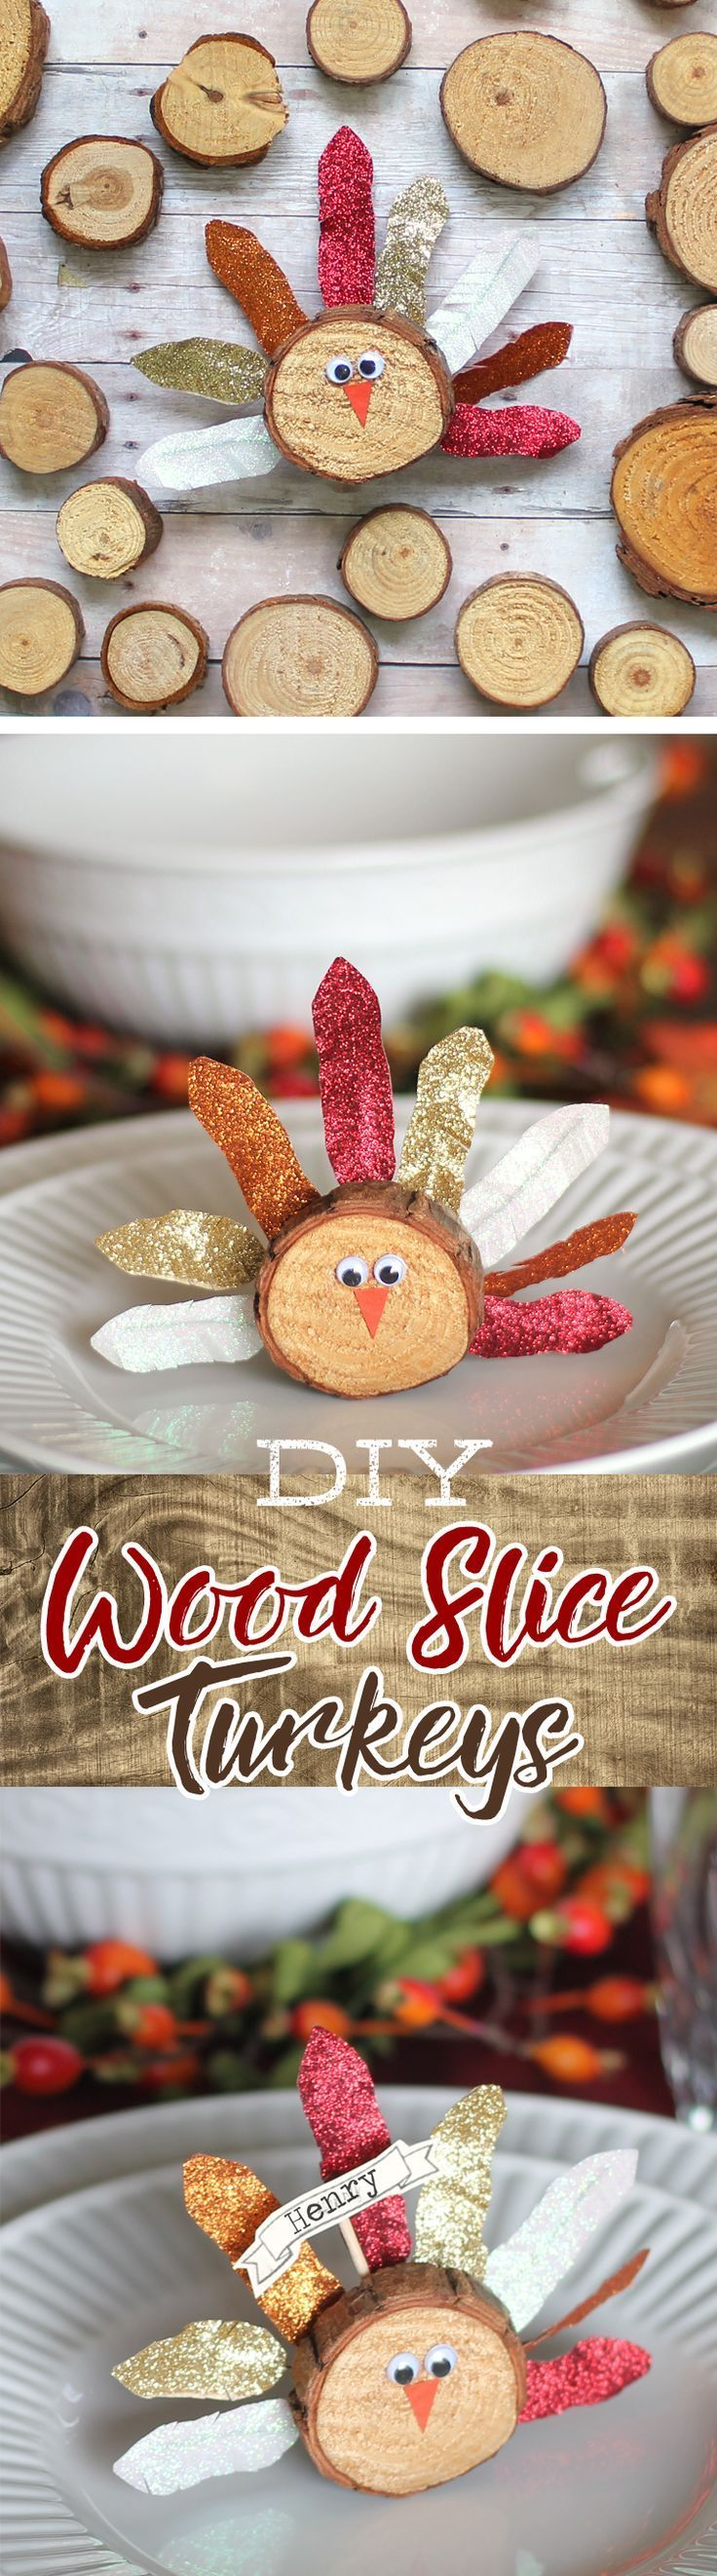 Make these wood slice turkeys with washi tape feathers to decorate your Thanksgiving table, use as place card holders or napkin rings. A cute and easy Thanksgiving craft.